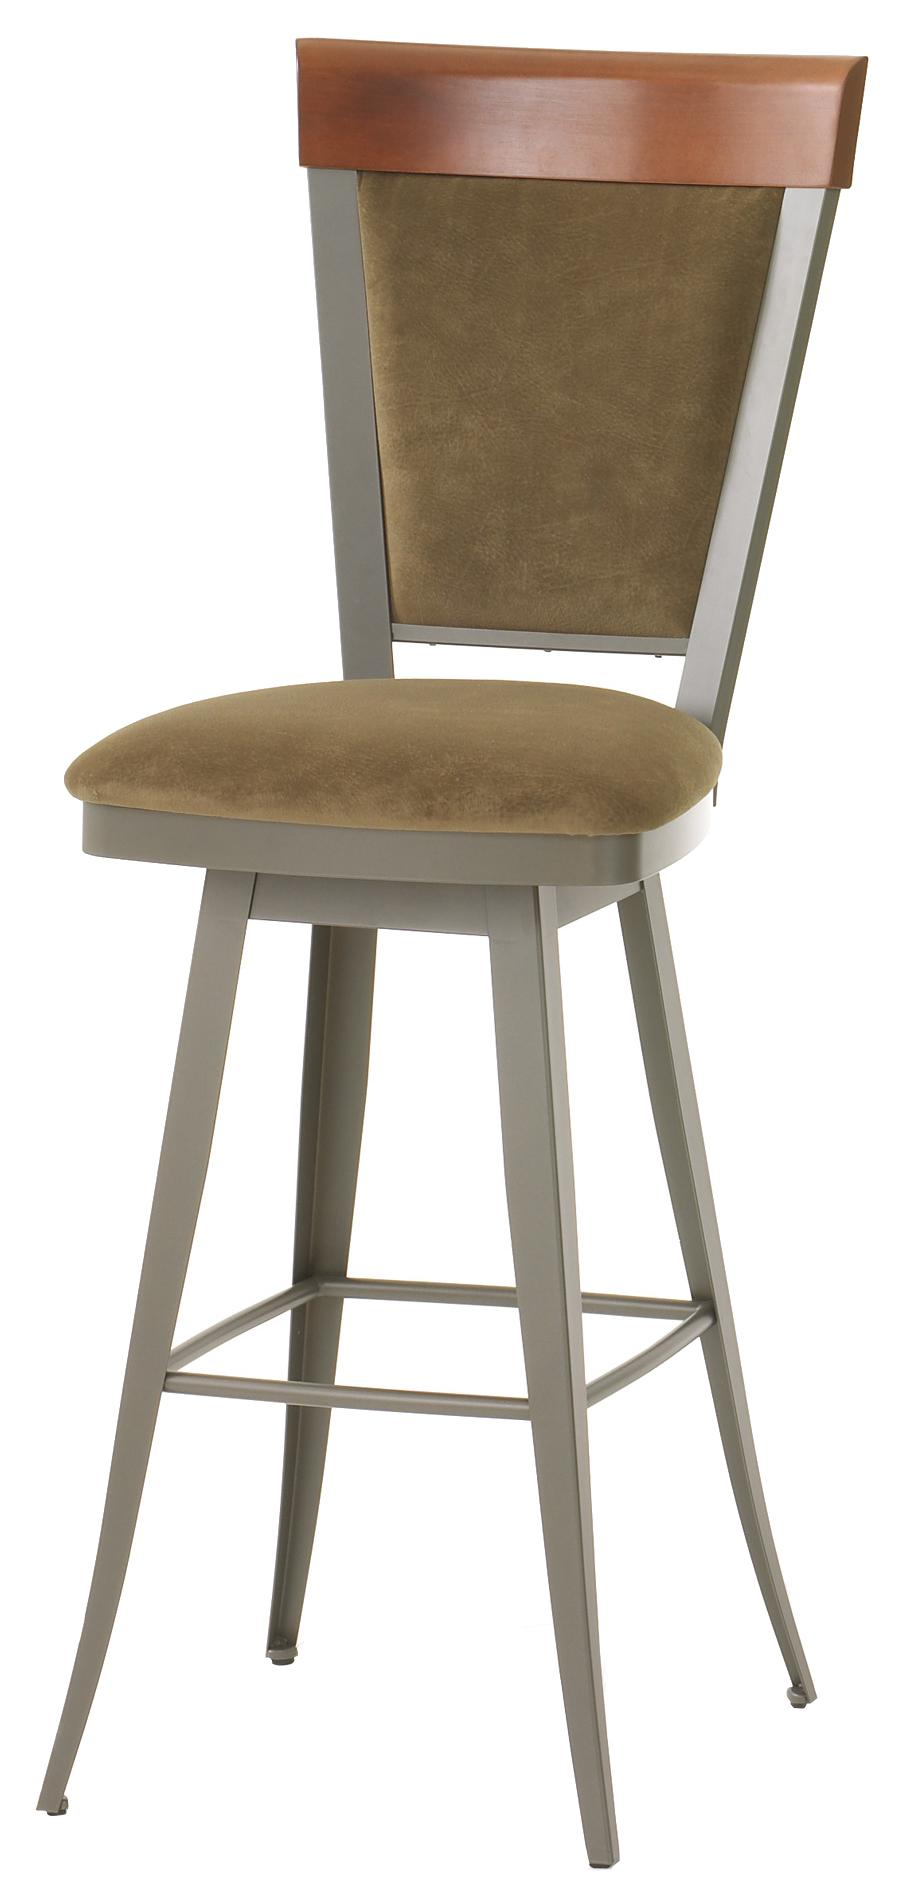 "Amisco Countryside 34"" Eleanor Swivel Stool  - Item Number: 41410 34"